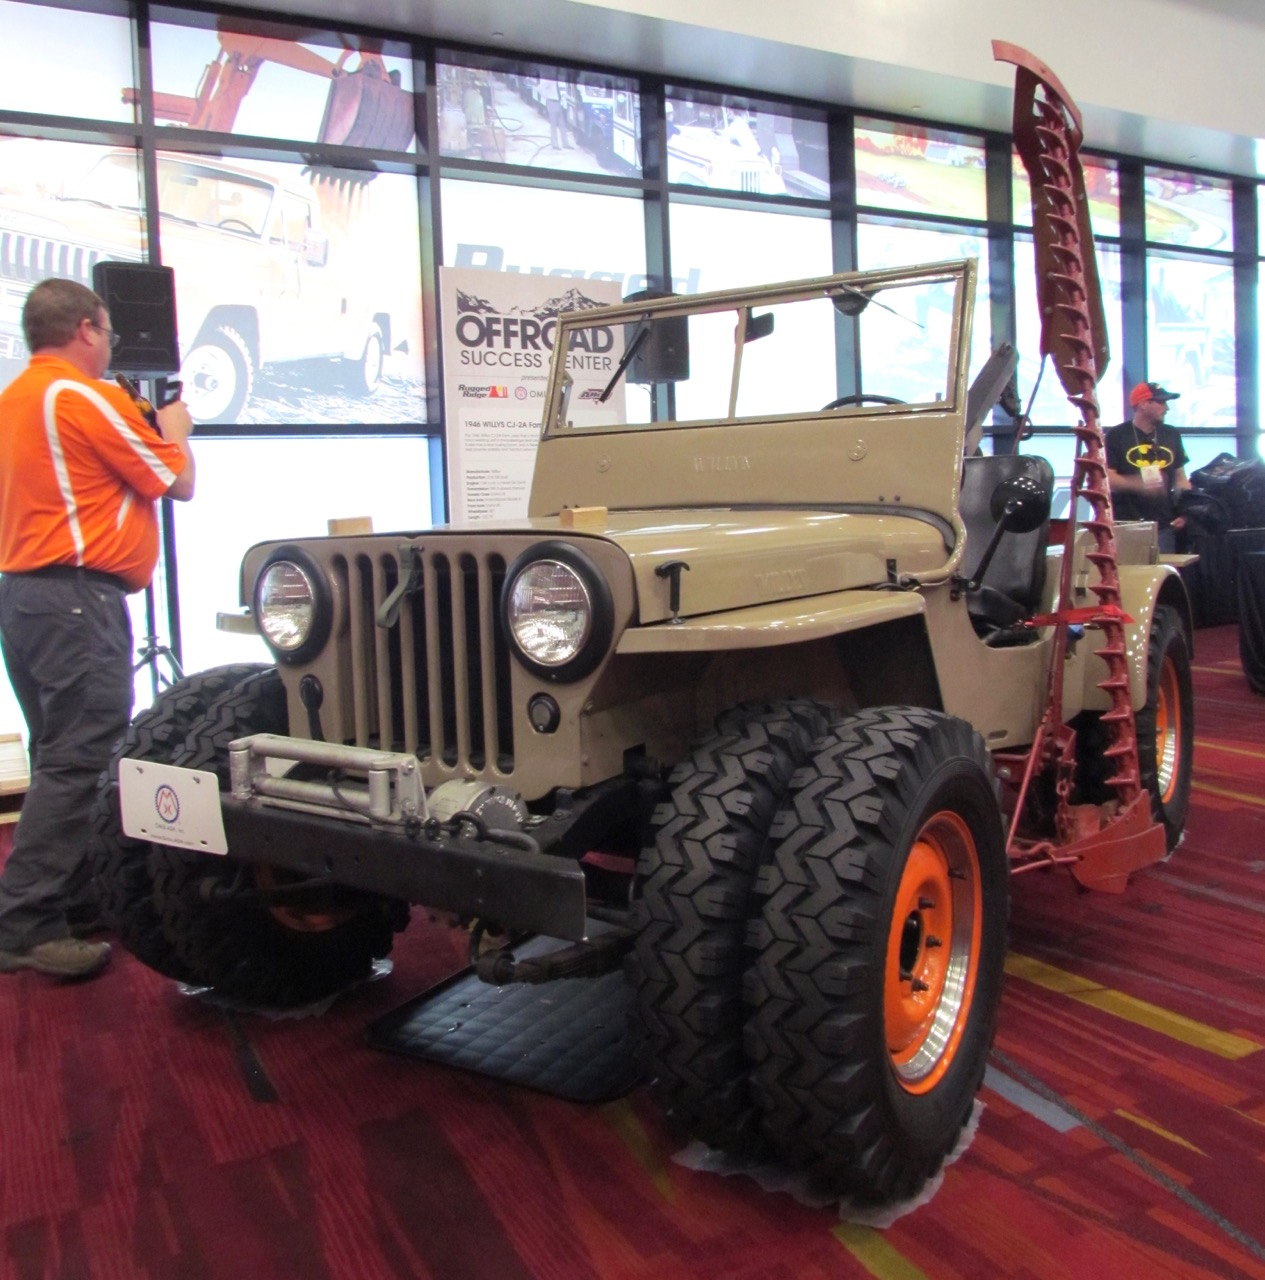 Like GIs, Jeeps made transition to post-war duties